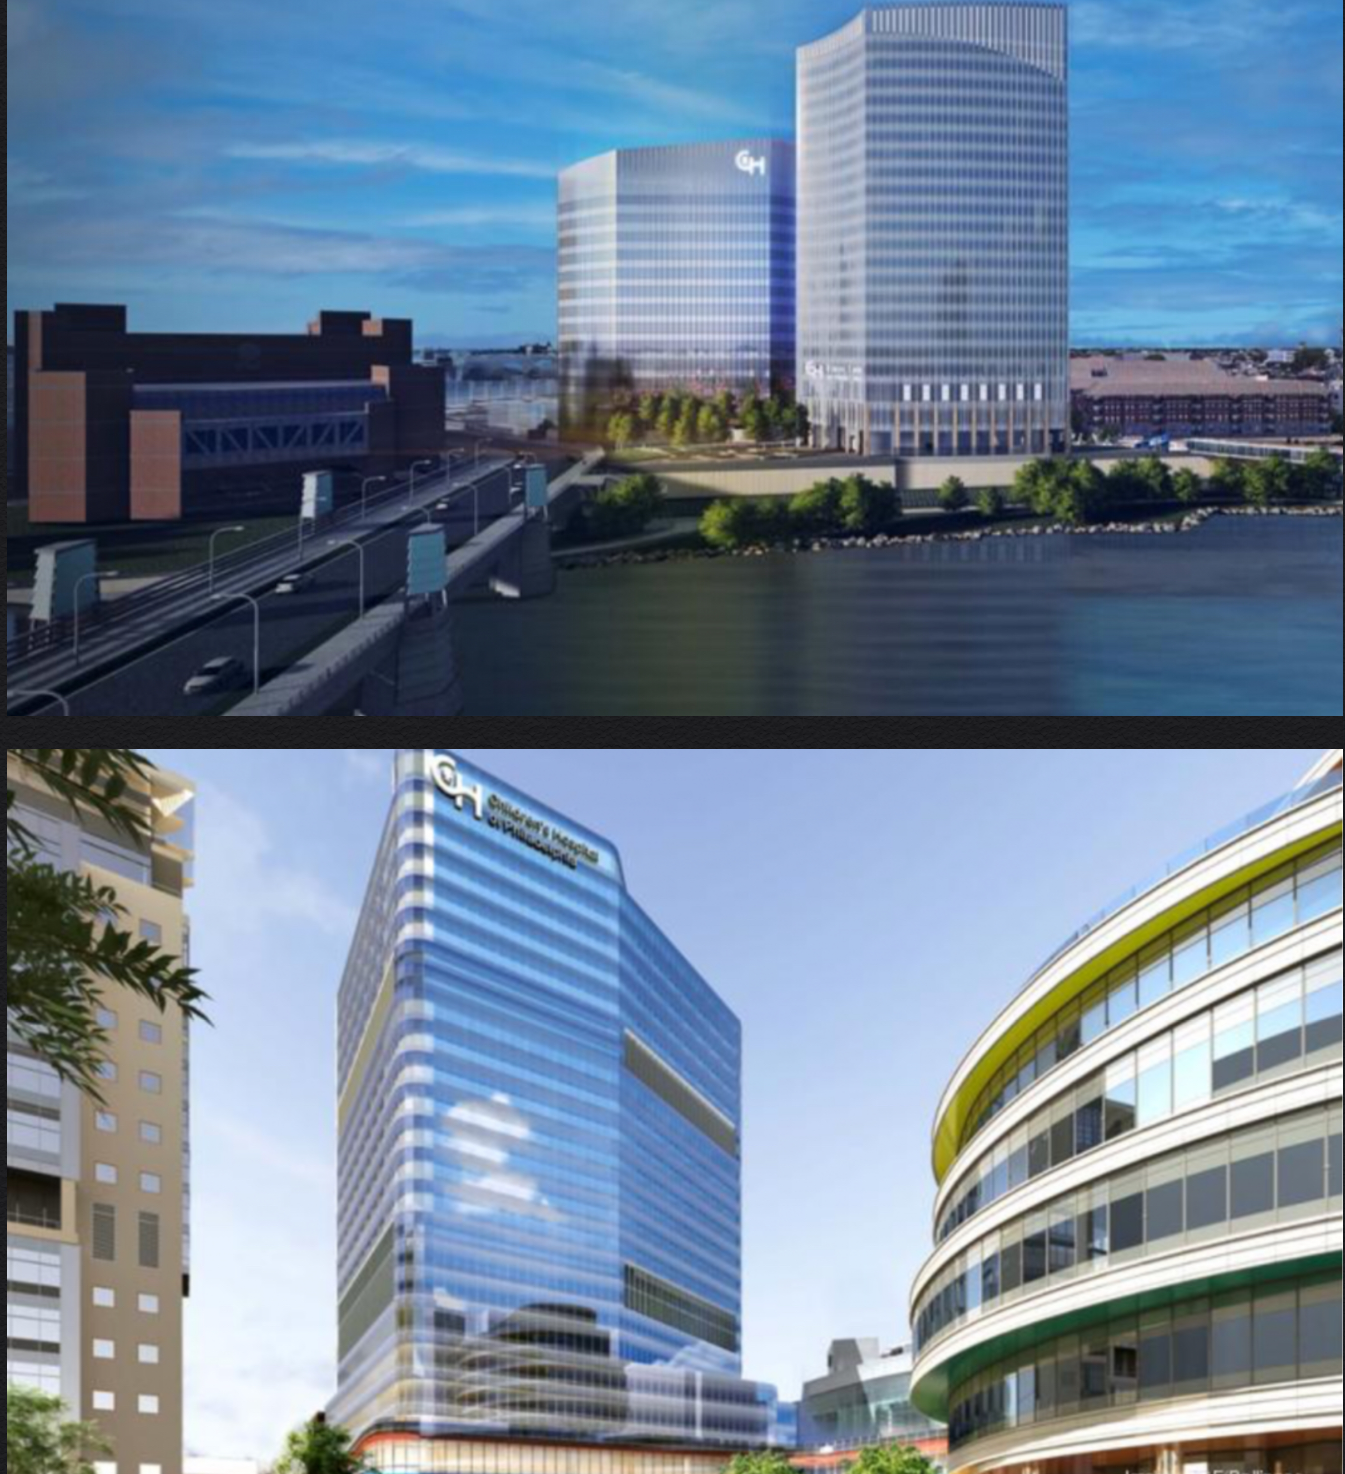 Renderings 690 Schuylkill Avenue (top) and 3401 Civic Center Boulevard (bottom). Credit - top: CANNOdesign. Bottom: ZGF/Ballinger.